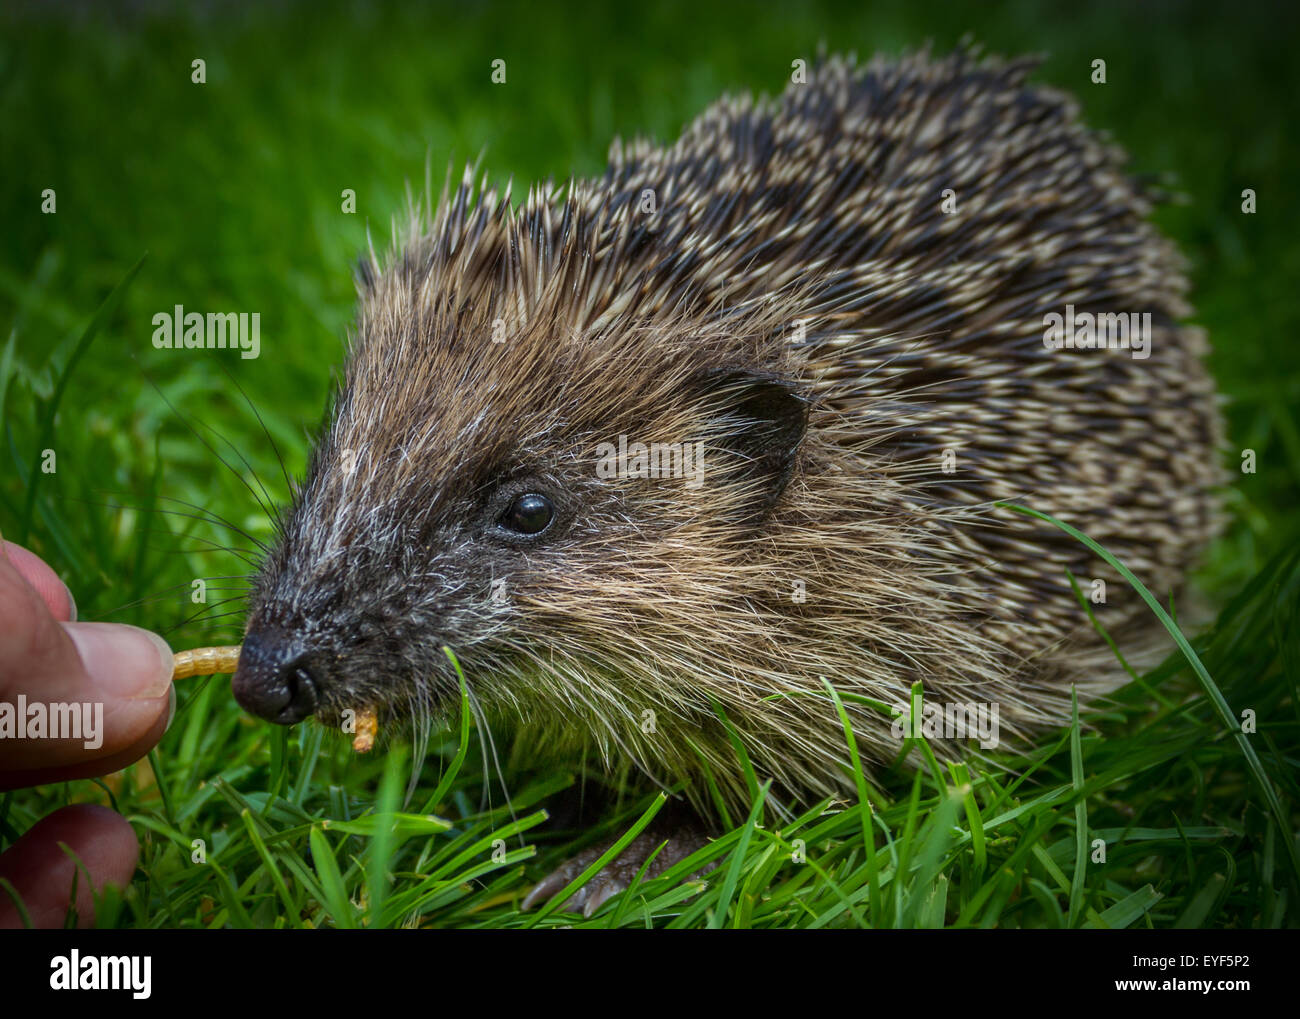 Young hedgehog (Erinaceus europaeus) being hand fed dried mealworms in the daytime - Stock Image